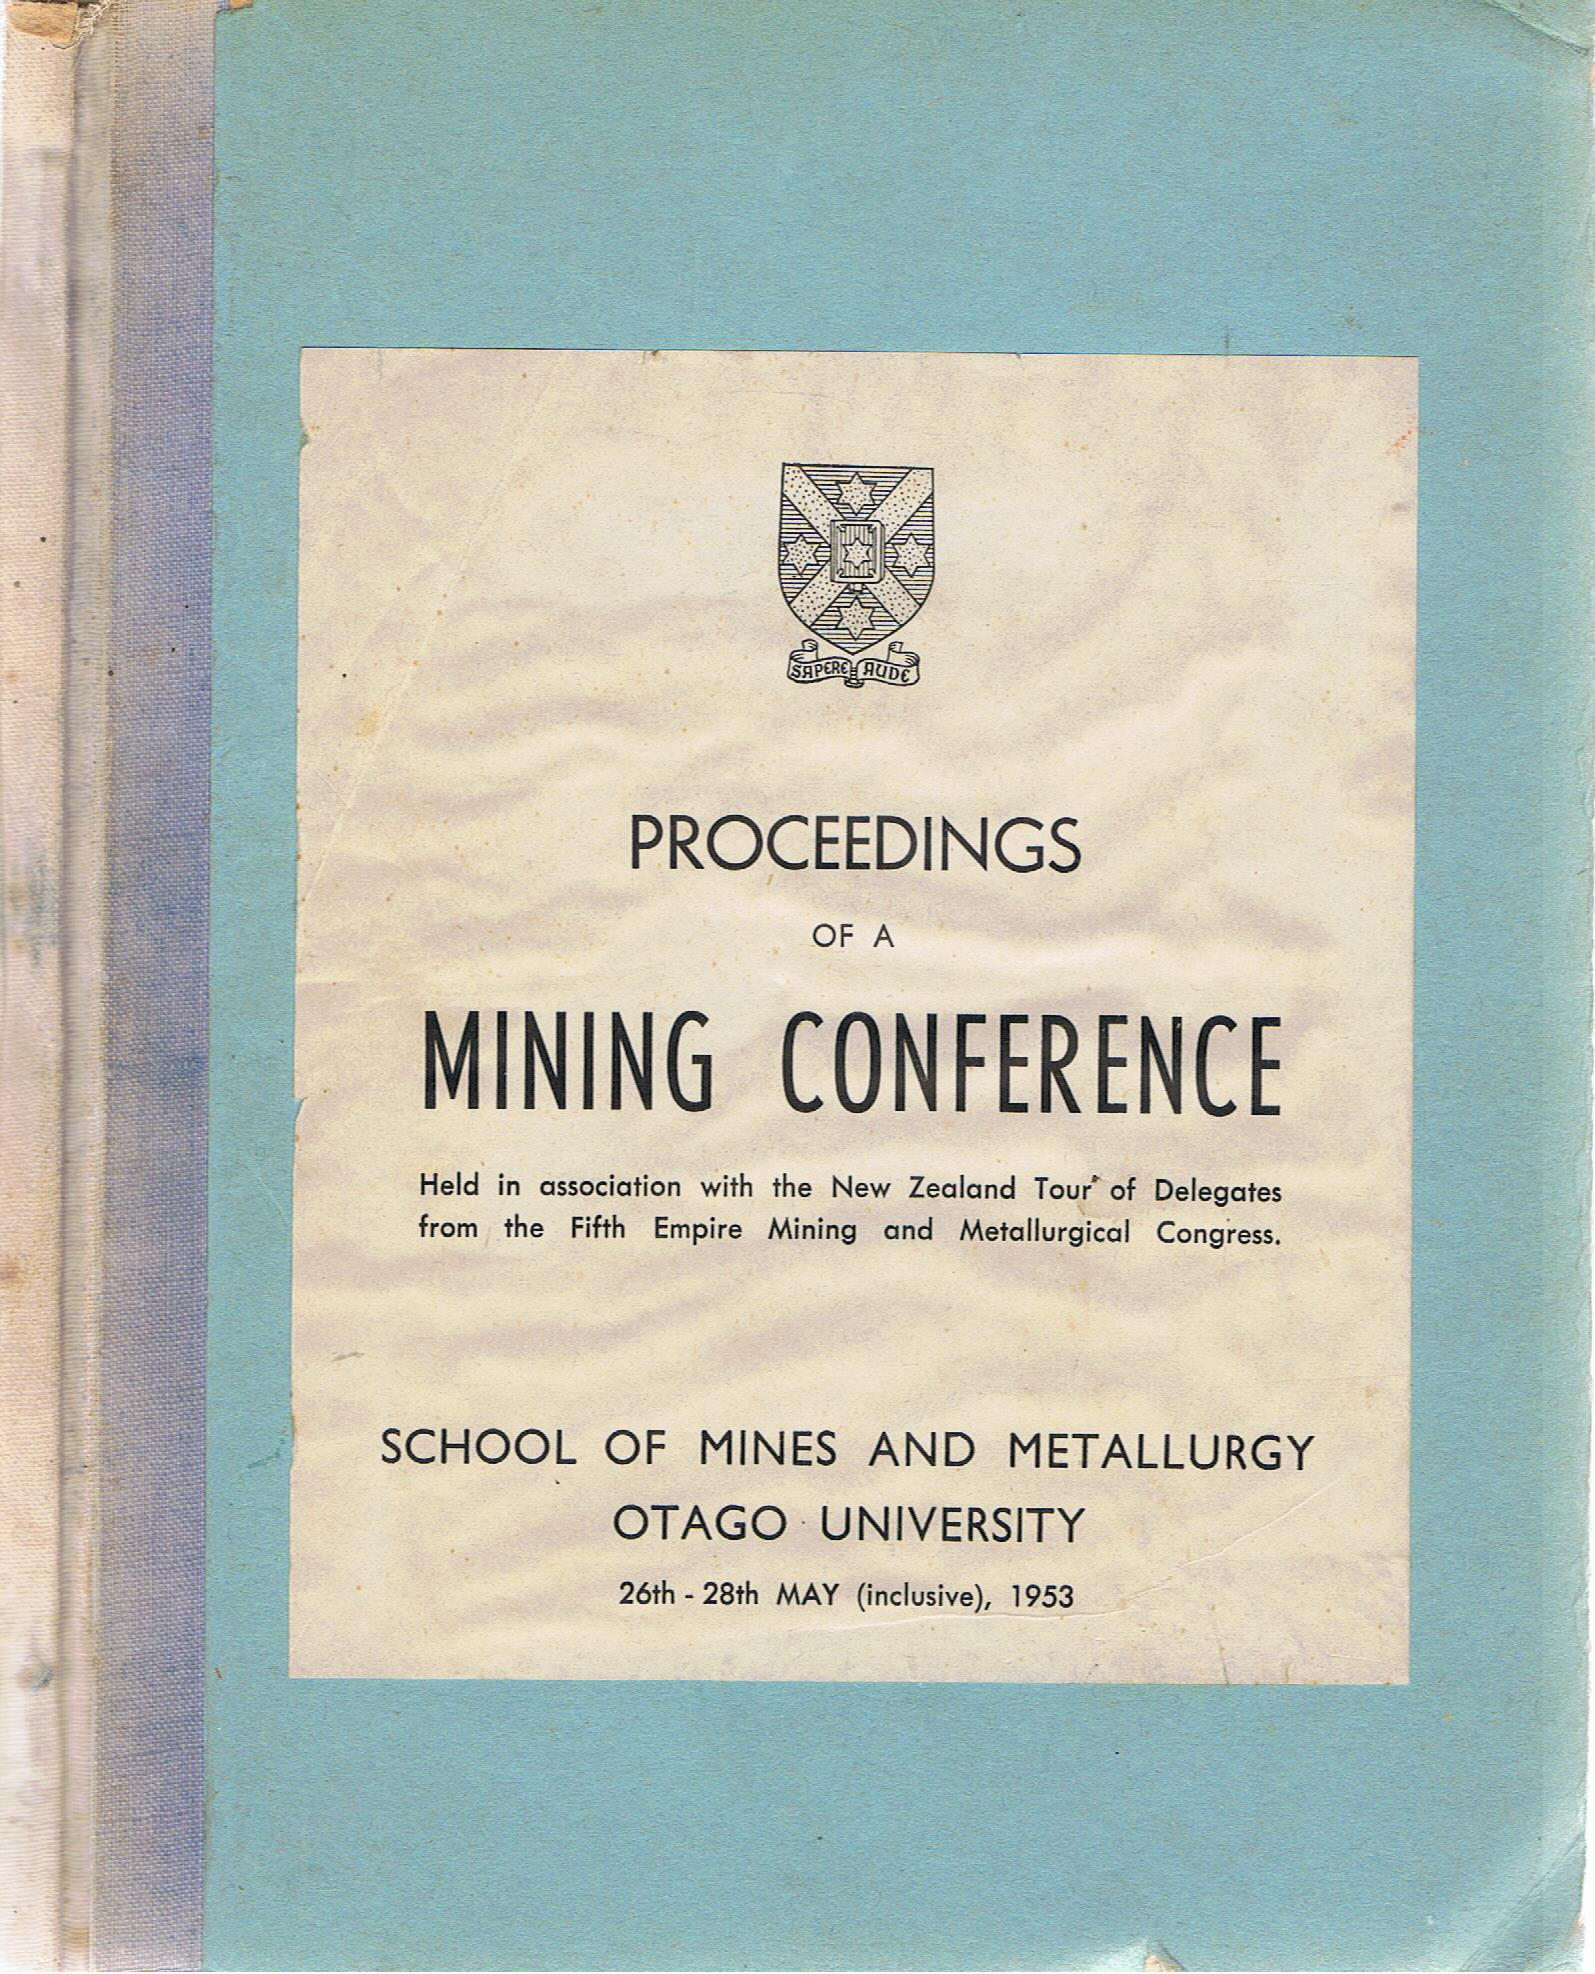 Image for Proceedings of a Mining Conference Held in Association with the New Zealand Tour of Delegates from the Fifth Empire Mining and Metallurgy Congress. School of Mines and Metallurgy Otago University 26th - 28th May, 1953.